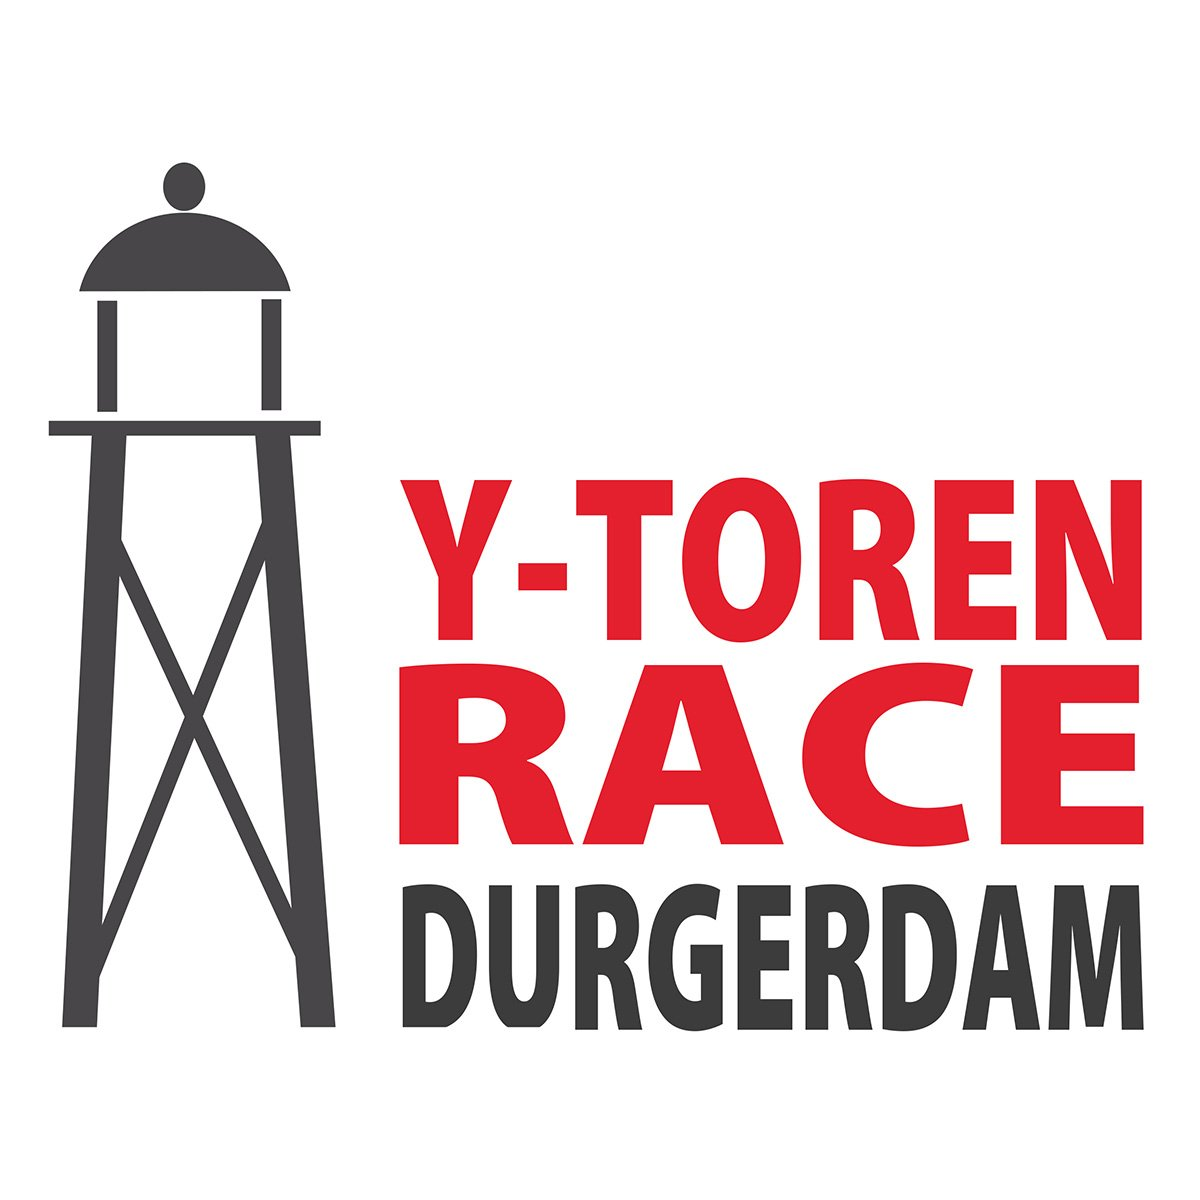 5 May 2018  - Photo's of the Y-toren regatta are online!Ships of the ORC 1, 2, 3 and Lemsteraken class.